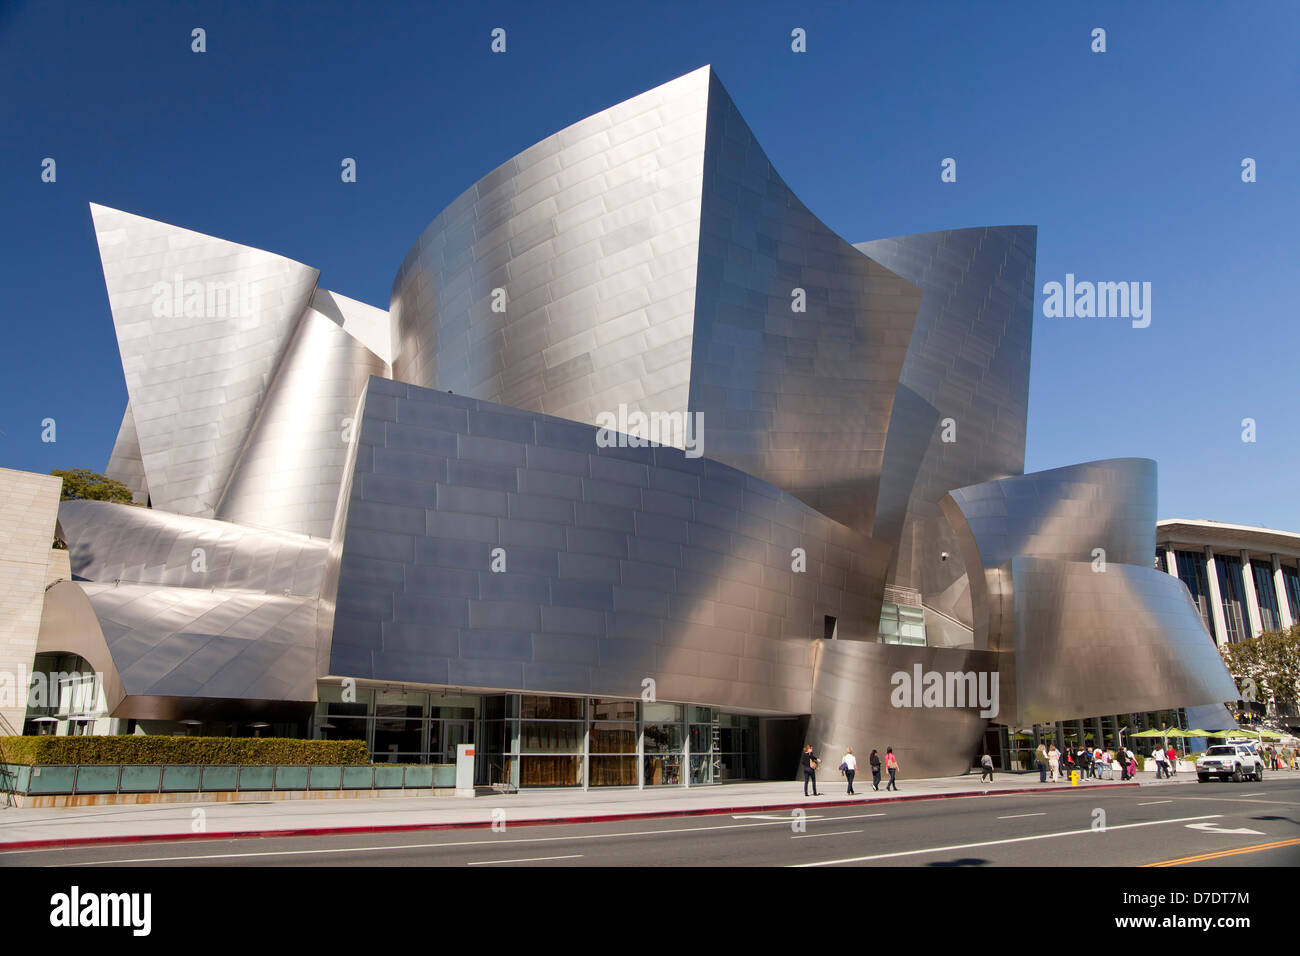 moderne Architektur von Frank Gehry, Walt Disney Concert Hall, Downtown Los Angeles, California, Vereinigte Staaten Stockbild